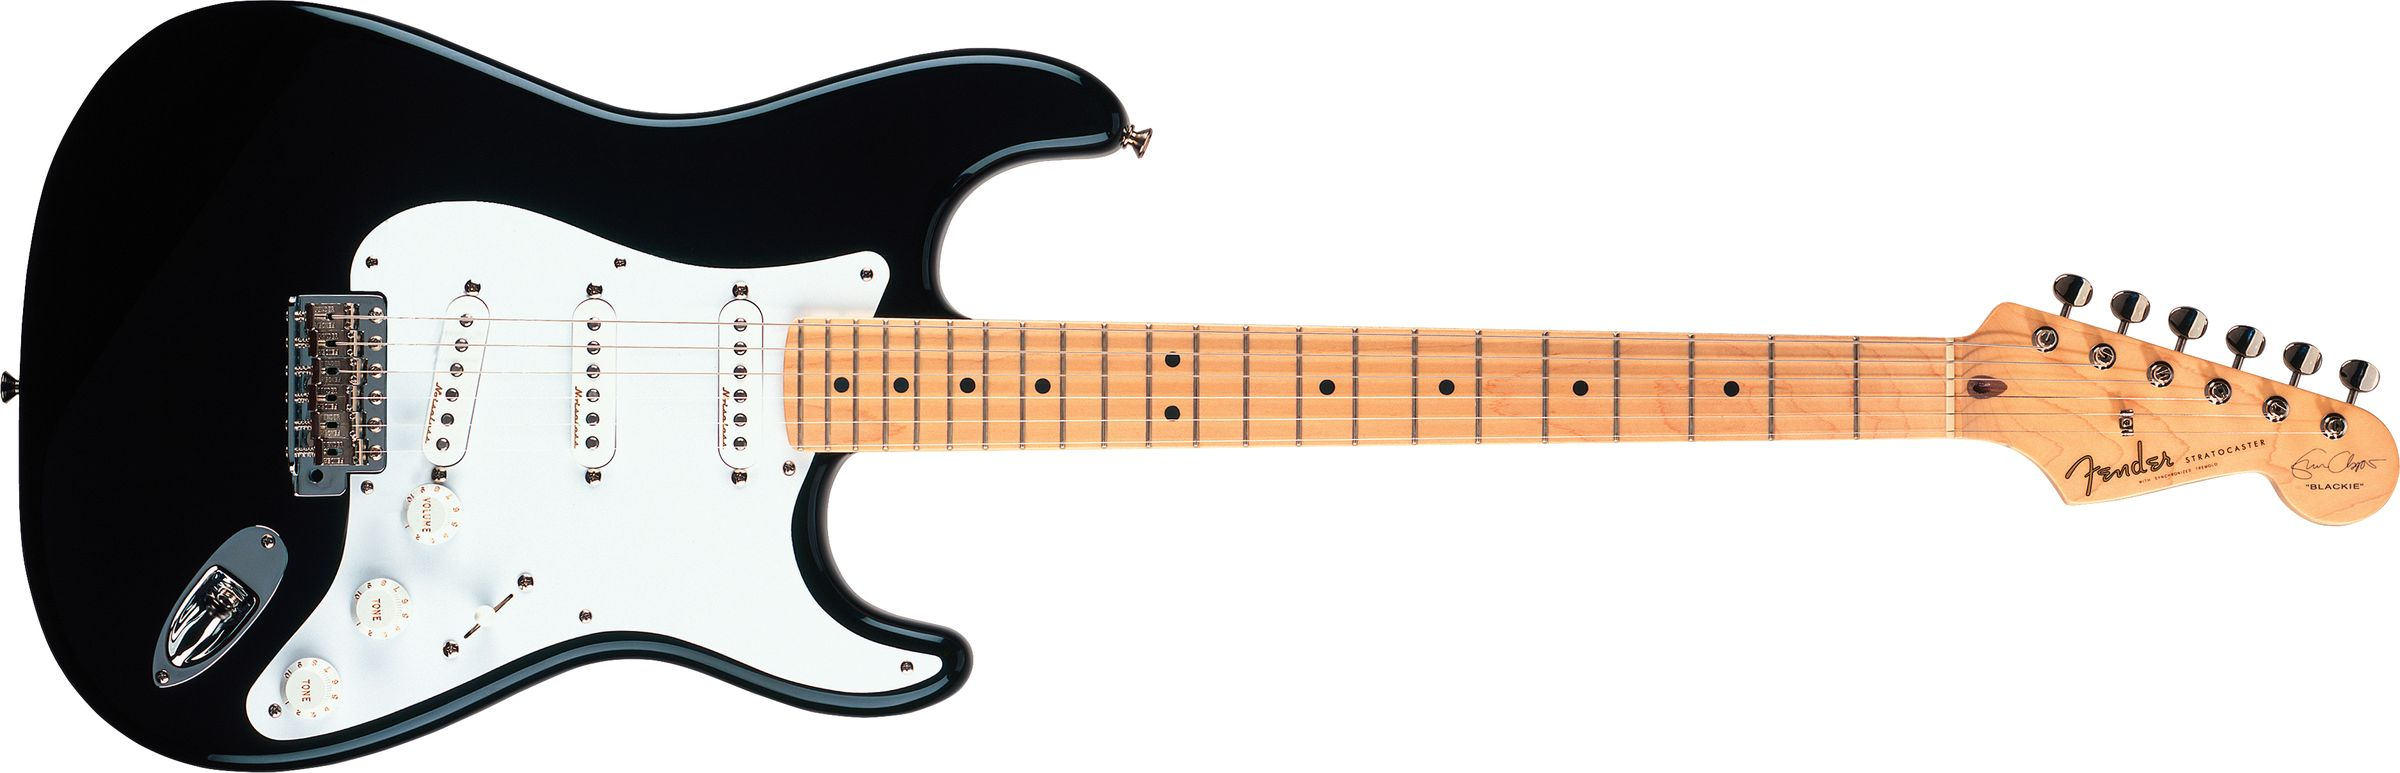 GUITARRA FENDER SIG SERIES ERIC CLAPTON 011-7602-806 BLACK